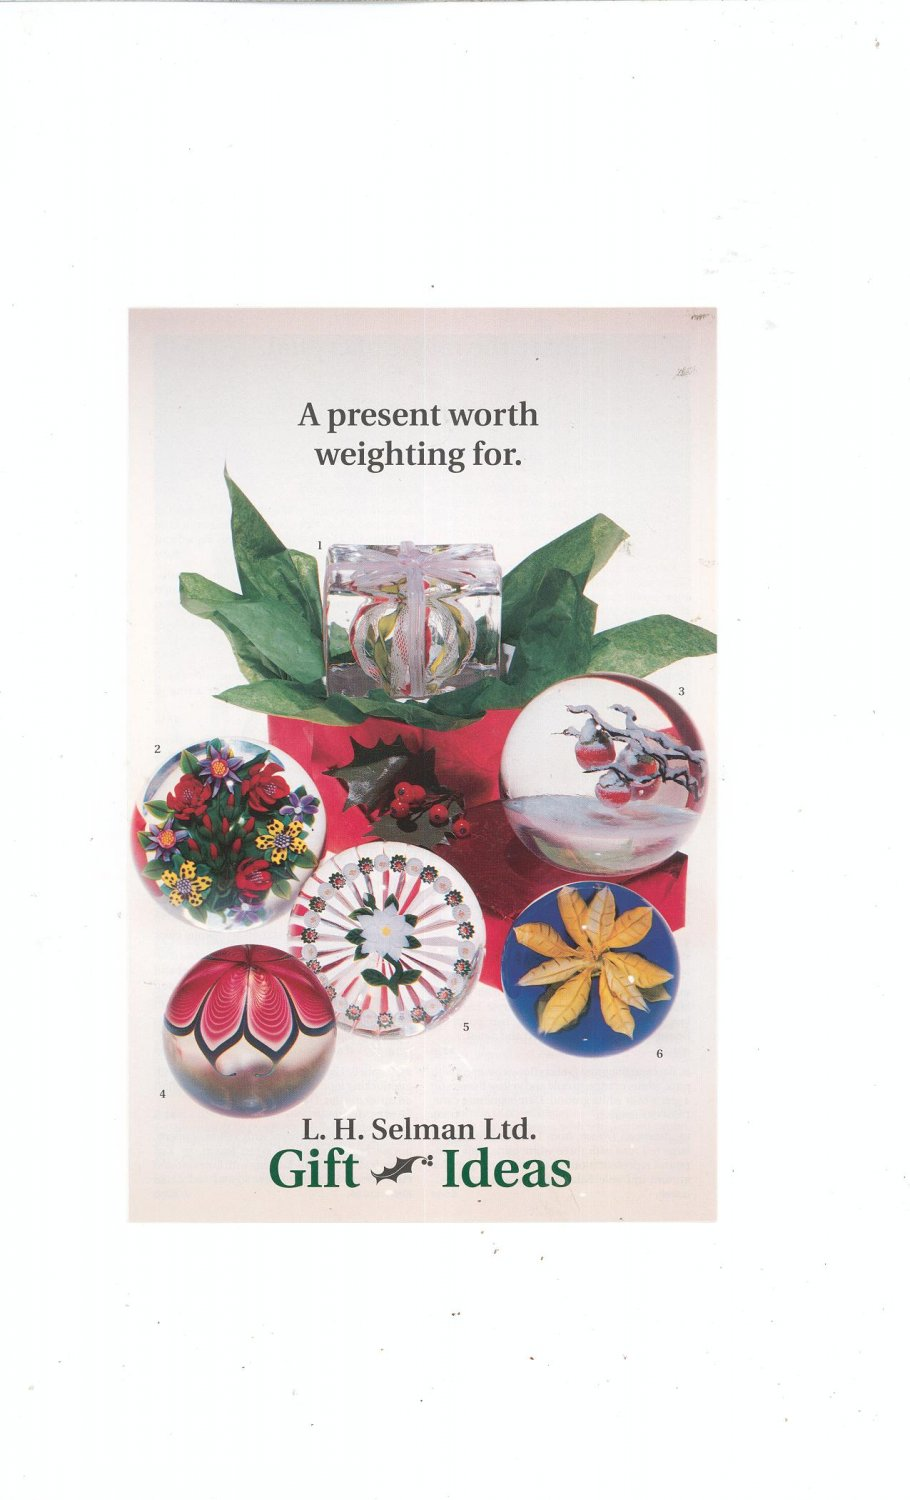 A Present Worth Weighting For Gift Ideas Catalog / Brochure by L. H. Selman Ltd. Paperweights